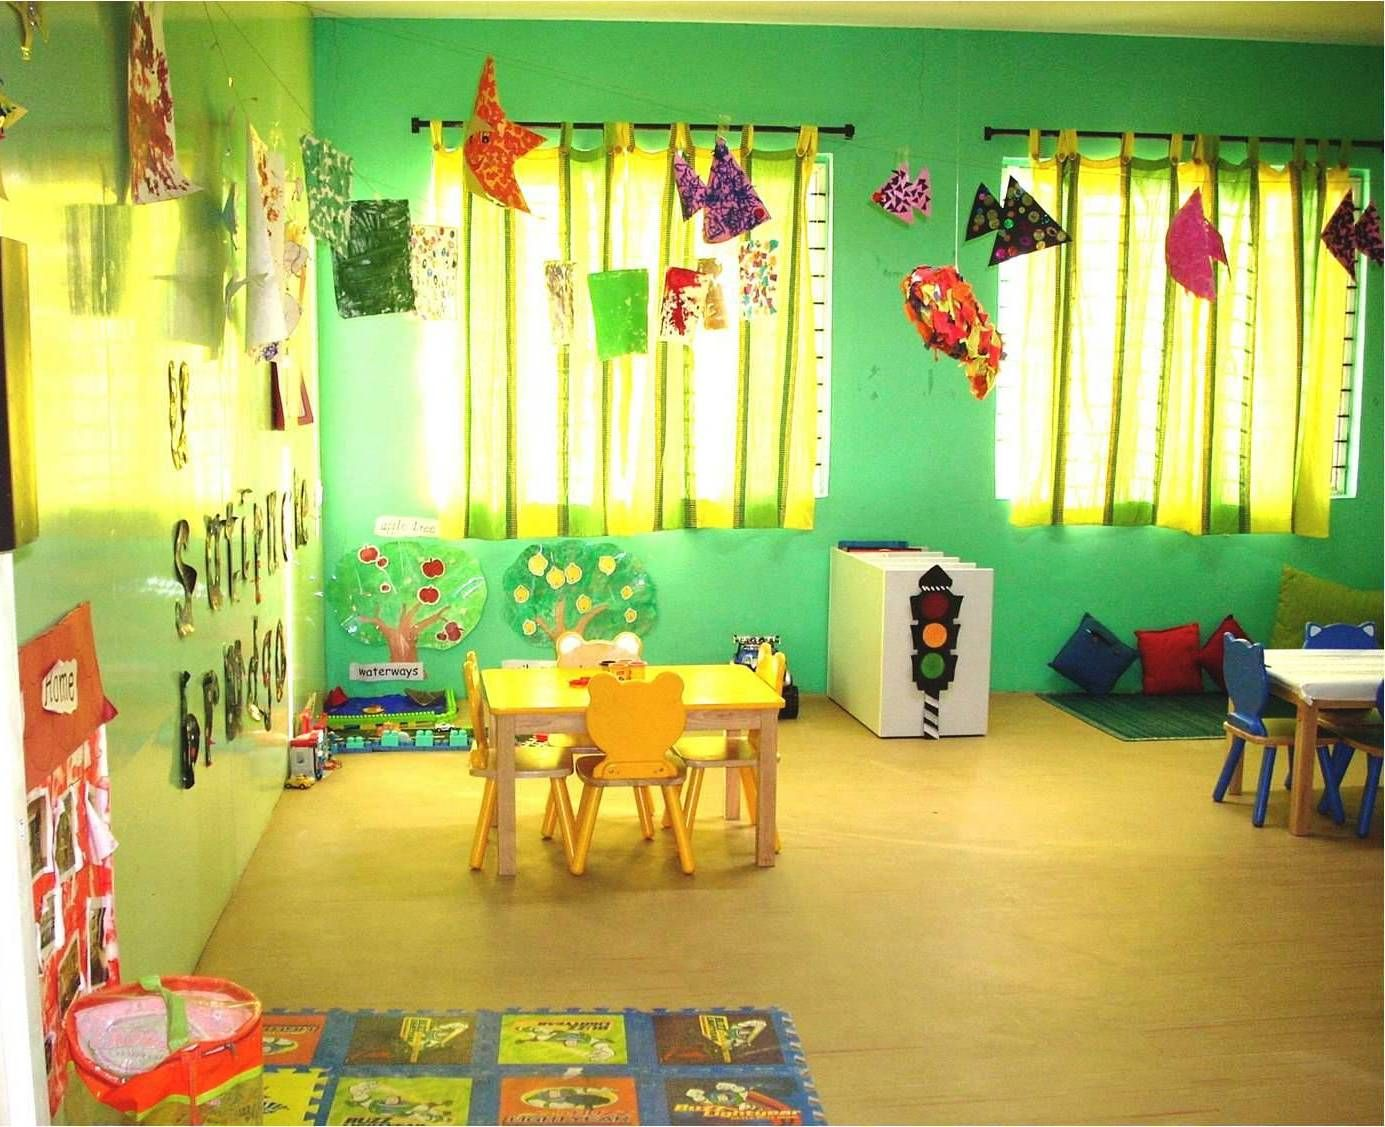 Best paint colors for preschool classrooms - Preschool Classroom With Green Wall For Cozy And Best Preschool Classroom Inspiring Design Ideas